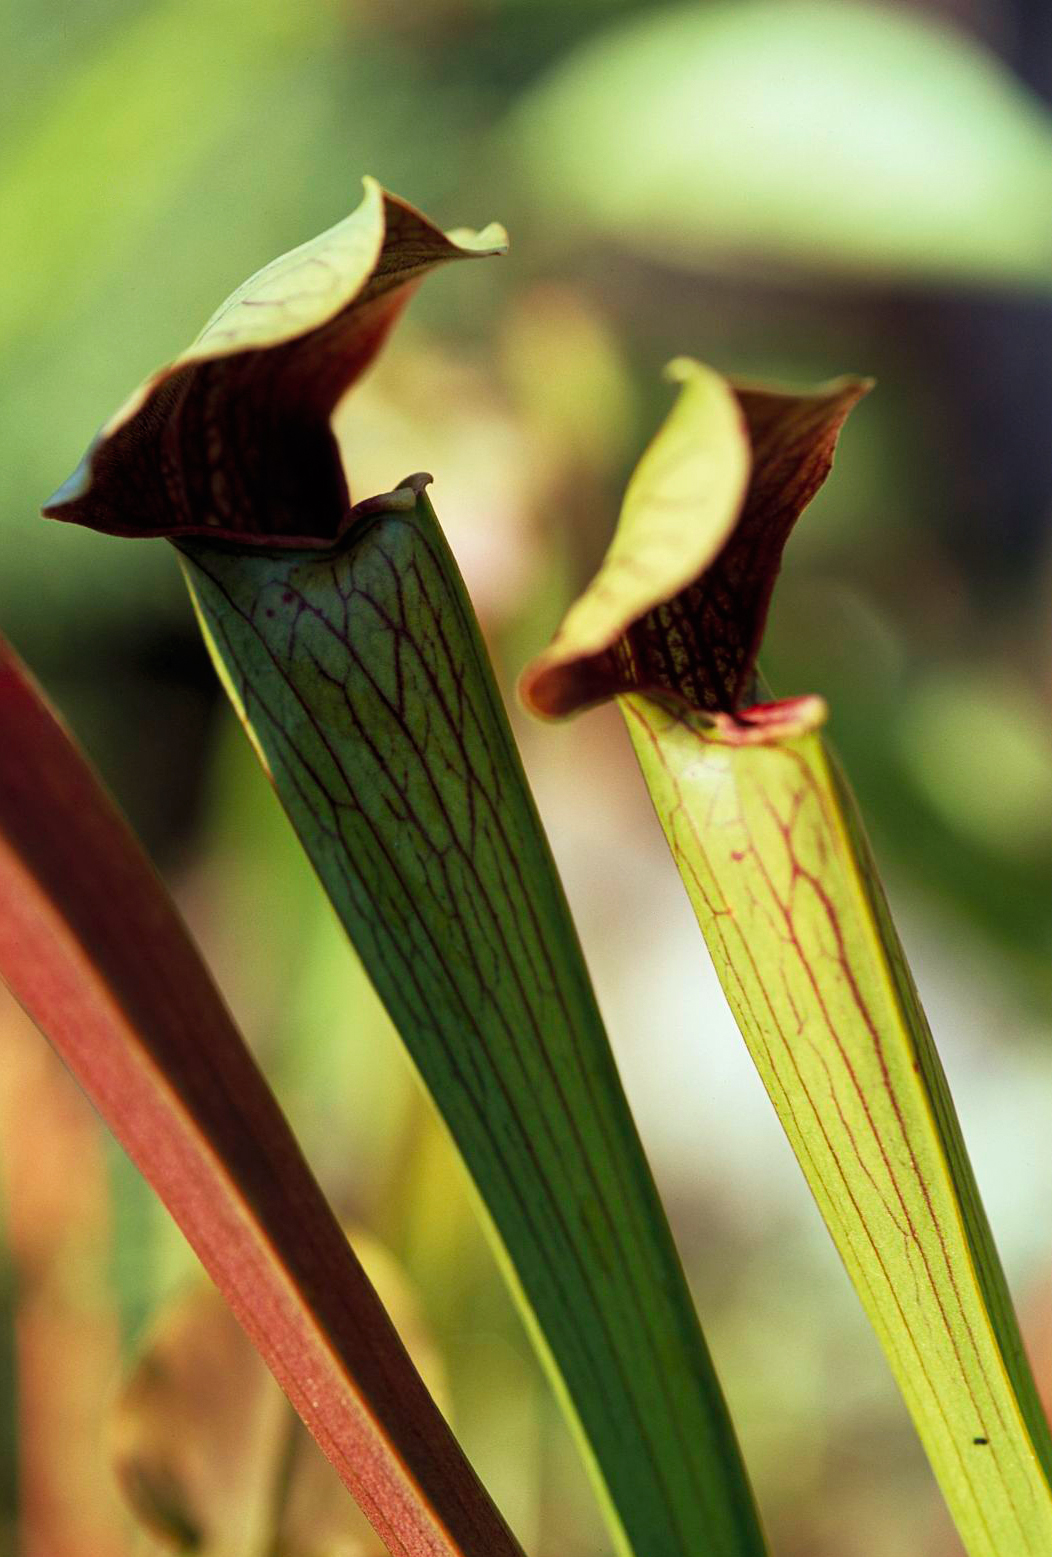 carnivorous pitcher plants